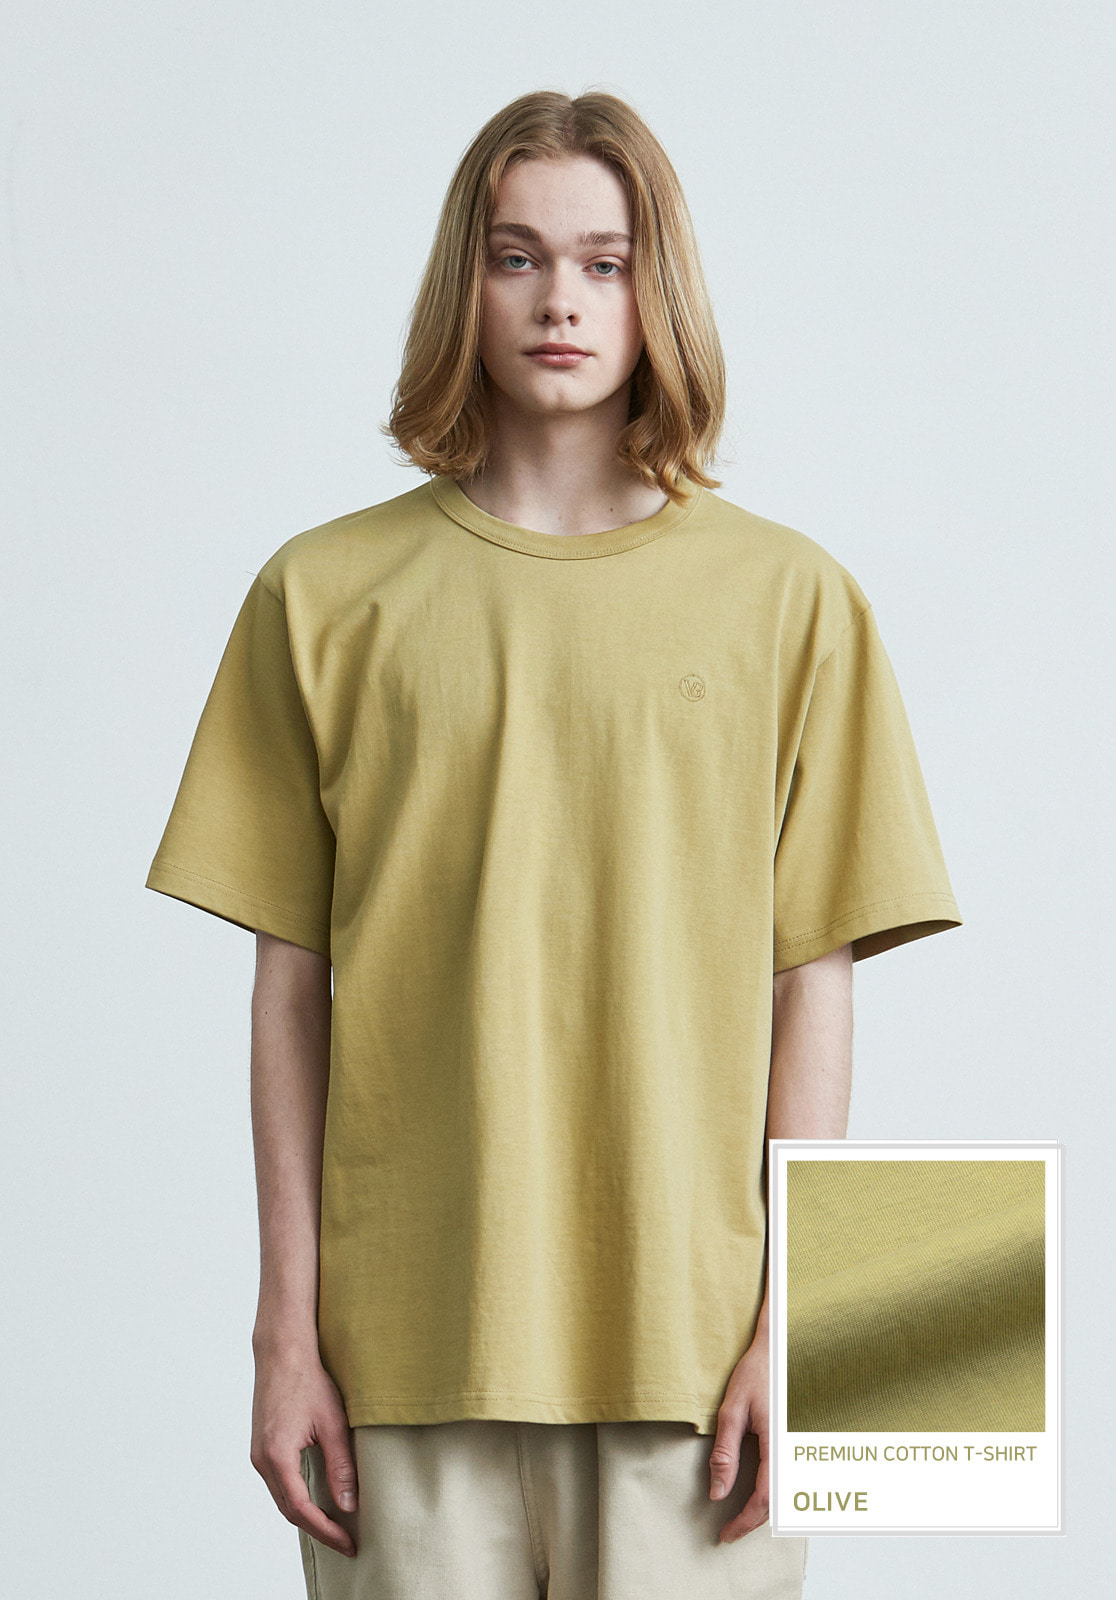 V017 PRIMIUM COTTON T-SHIRTS  OLIVE